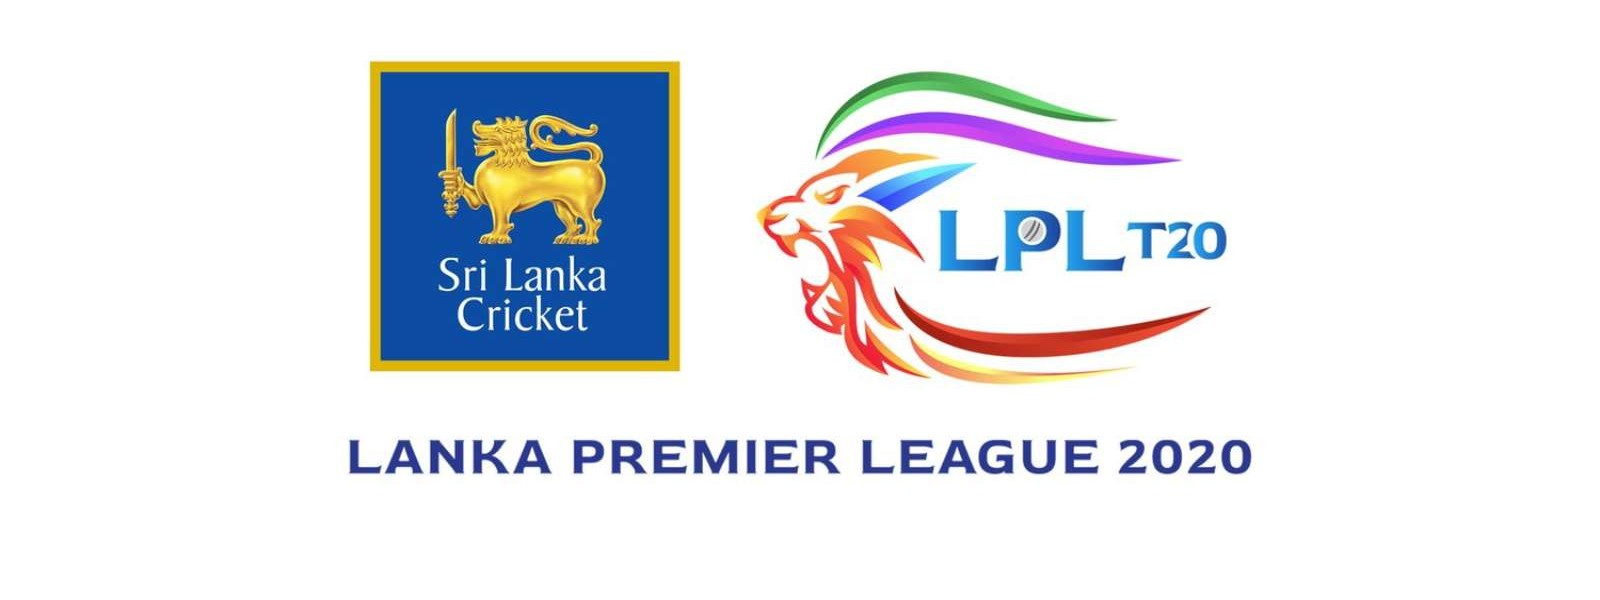 Lanka Premier League to go ahead after authorities give green light